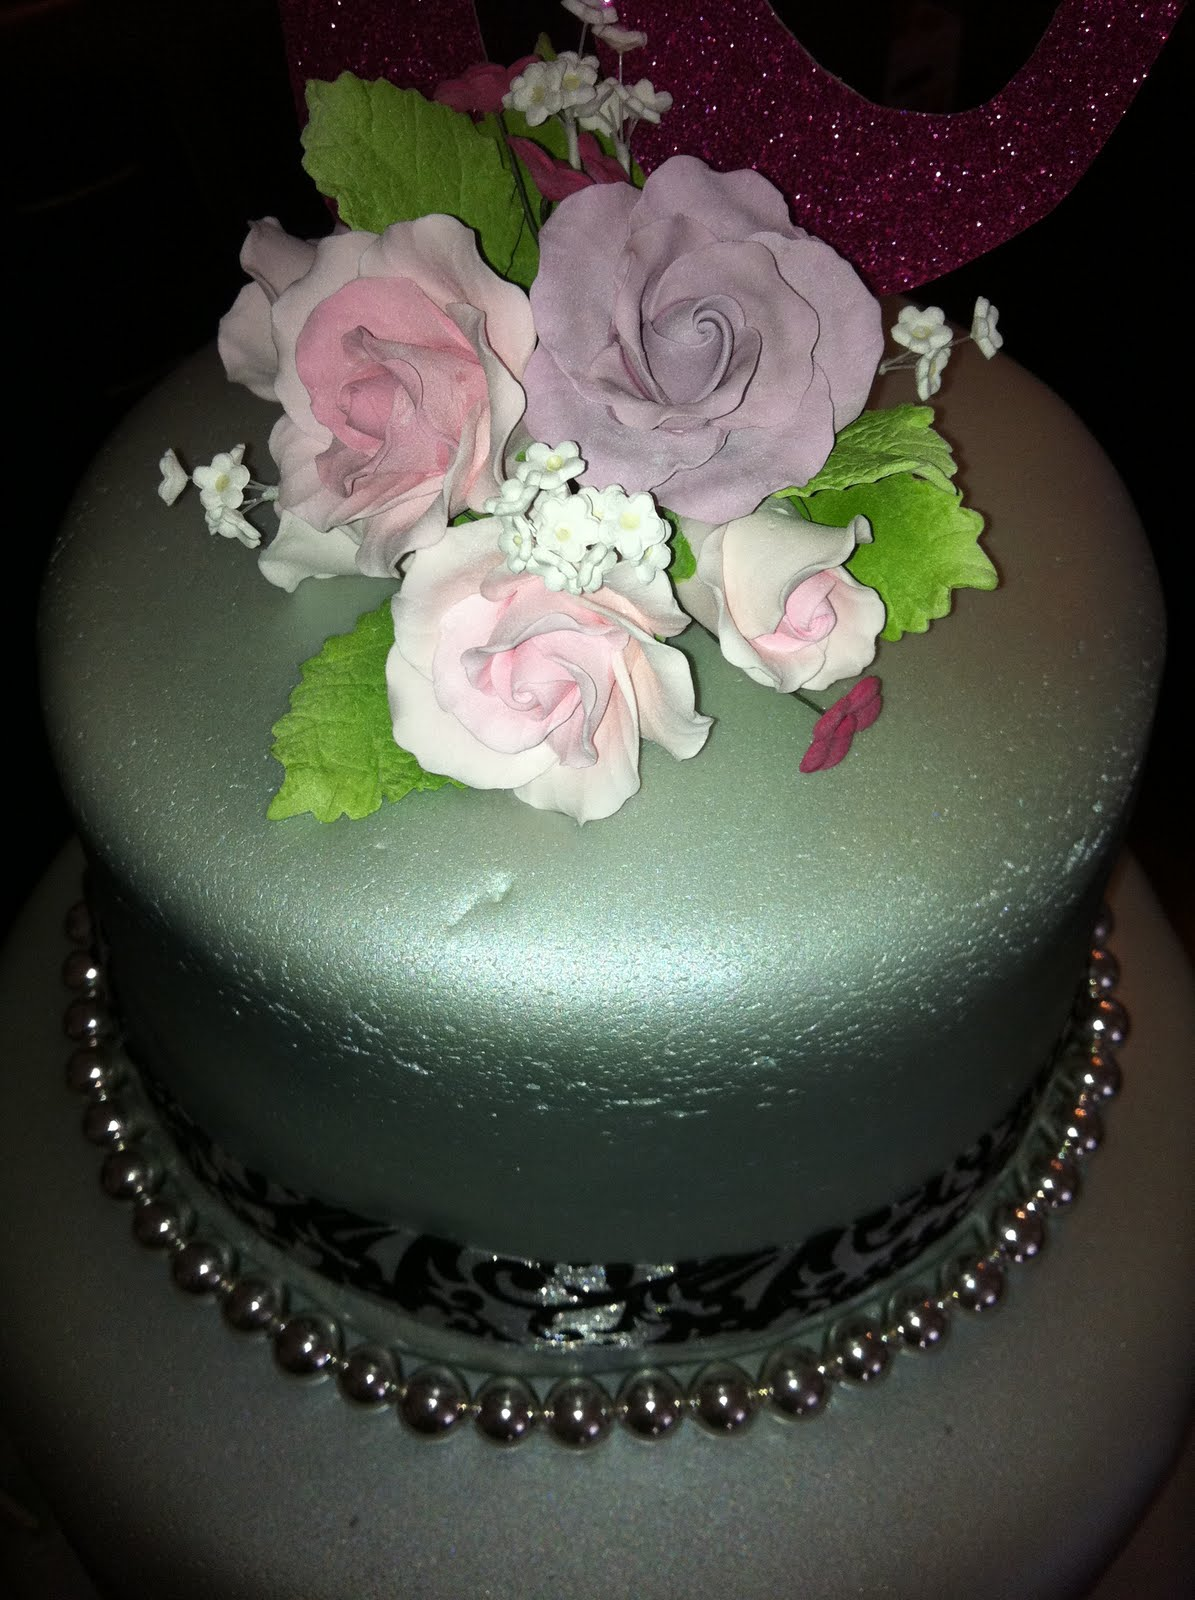 Jocelyns Wedding Cakes and More February 2011